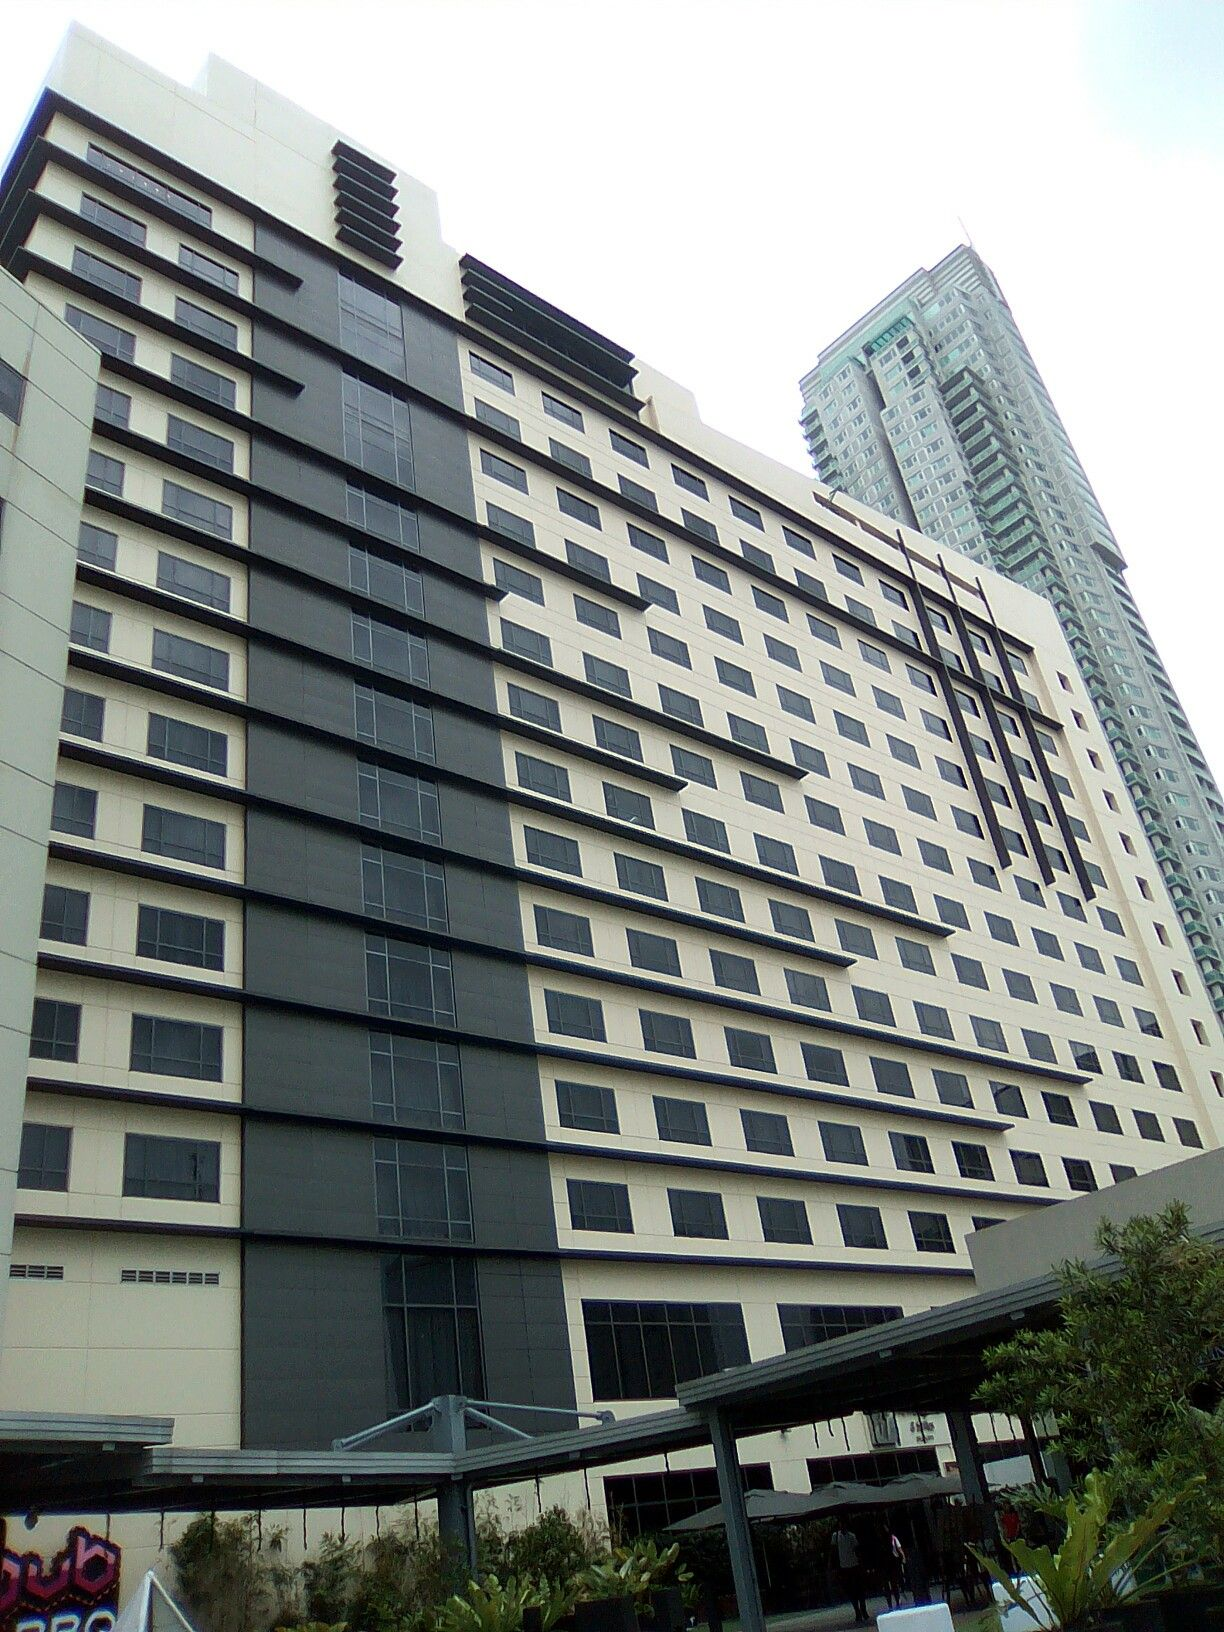 holiday inn and suites makati, 2017 | makati, building, places